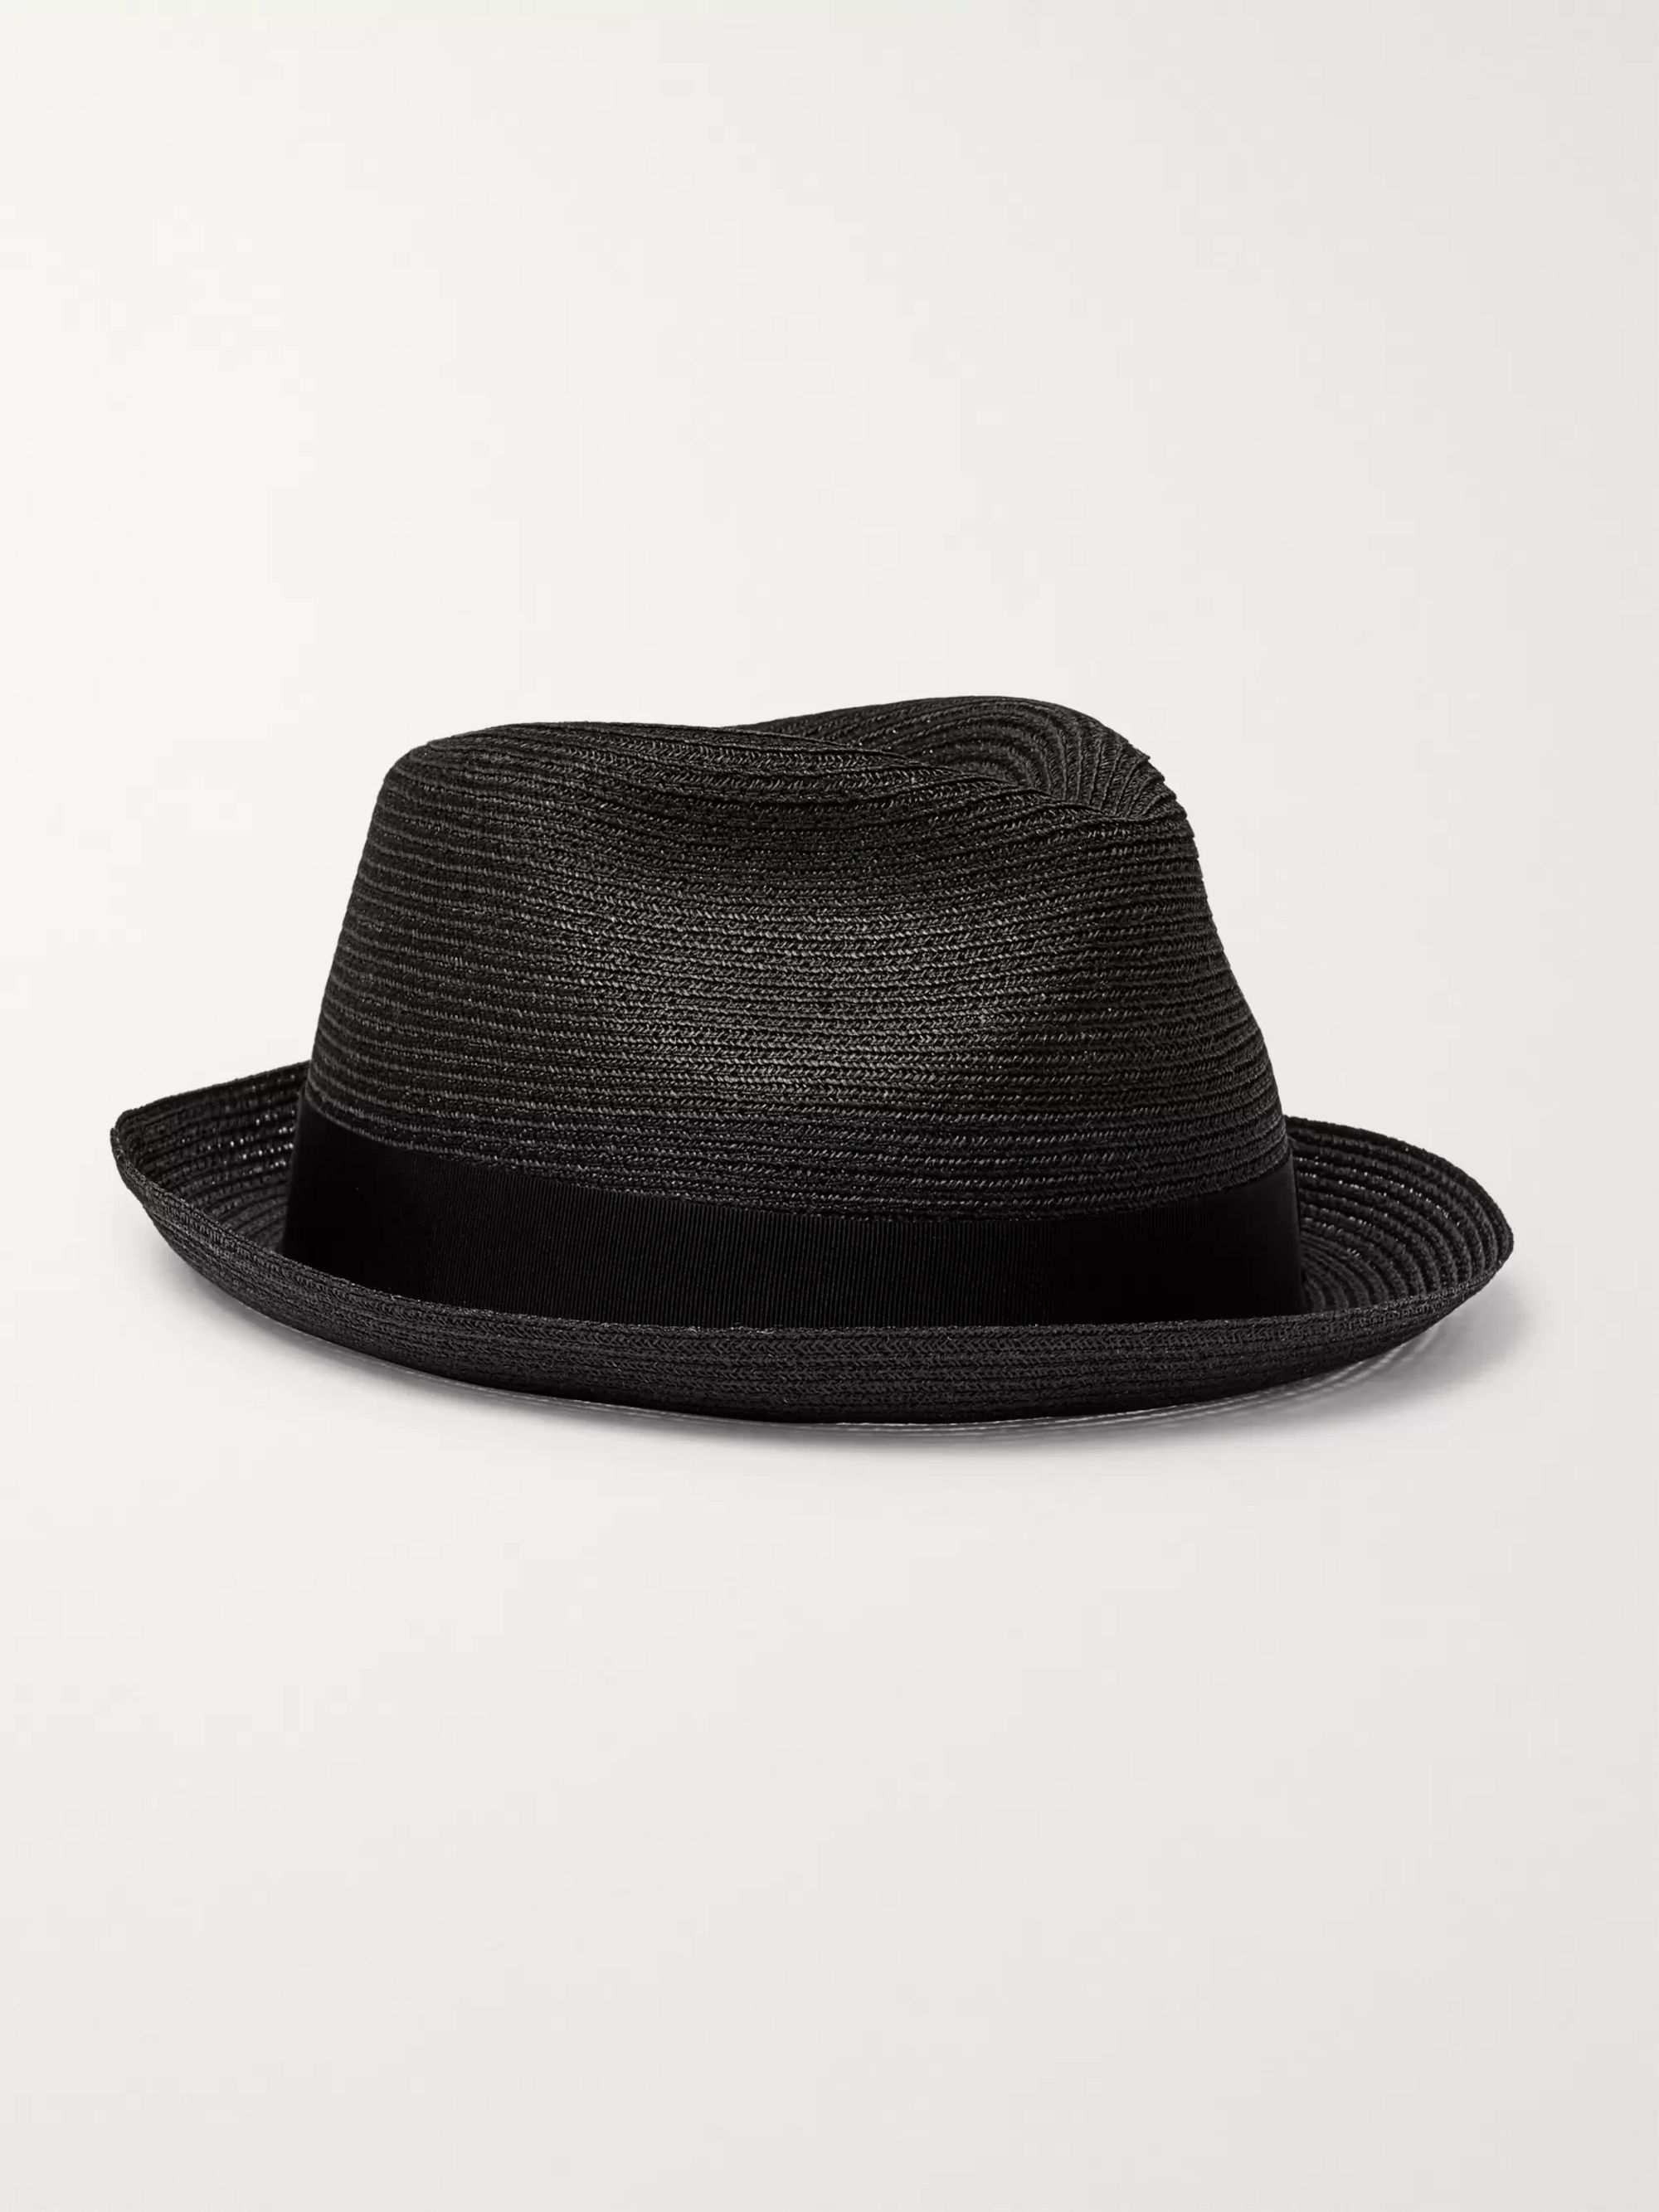 Traveller Grosgrain Trimmed Hemp Panama Hat by Borsalino